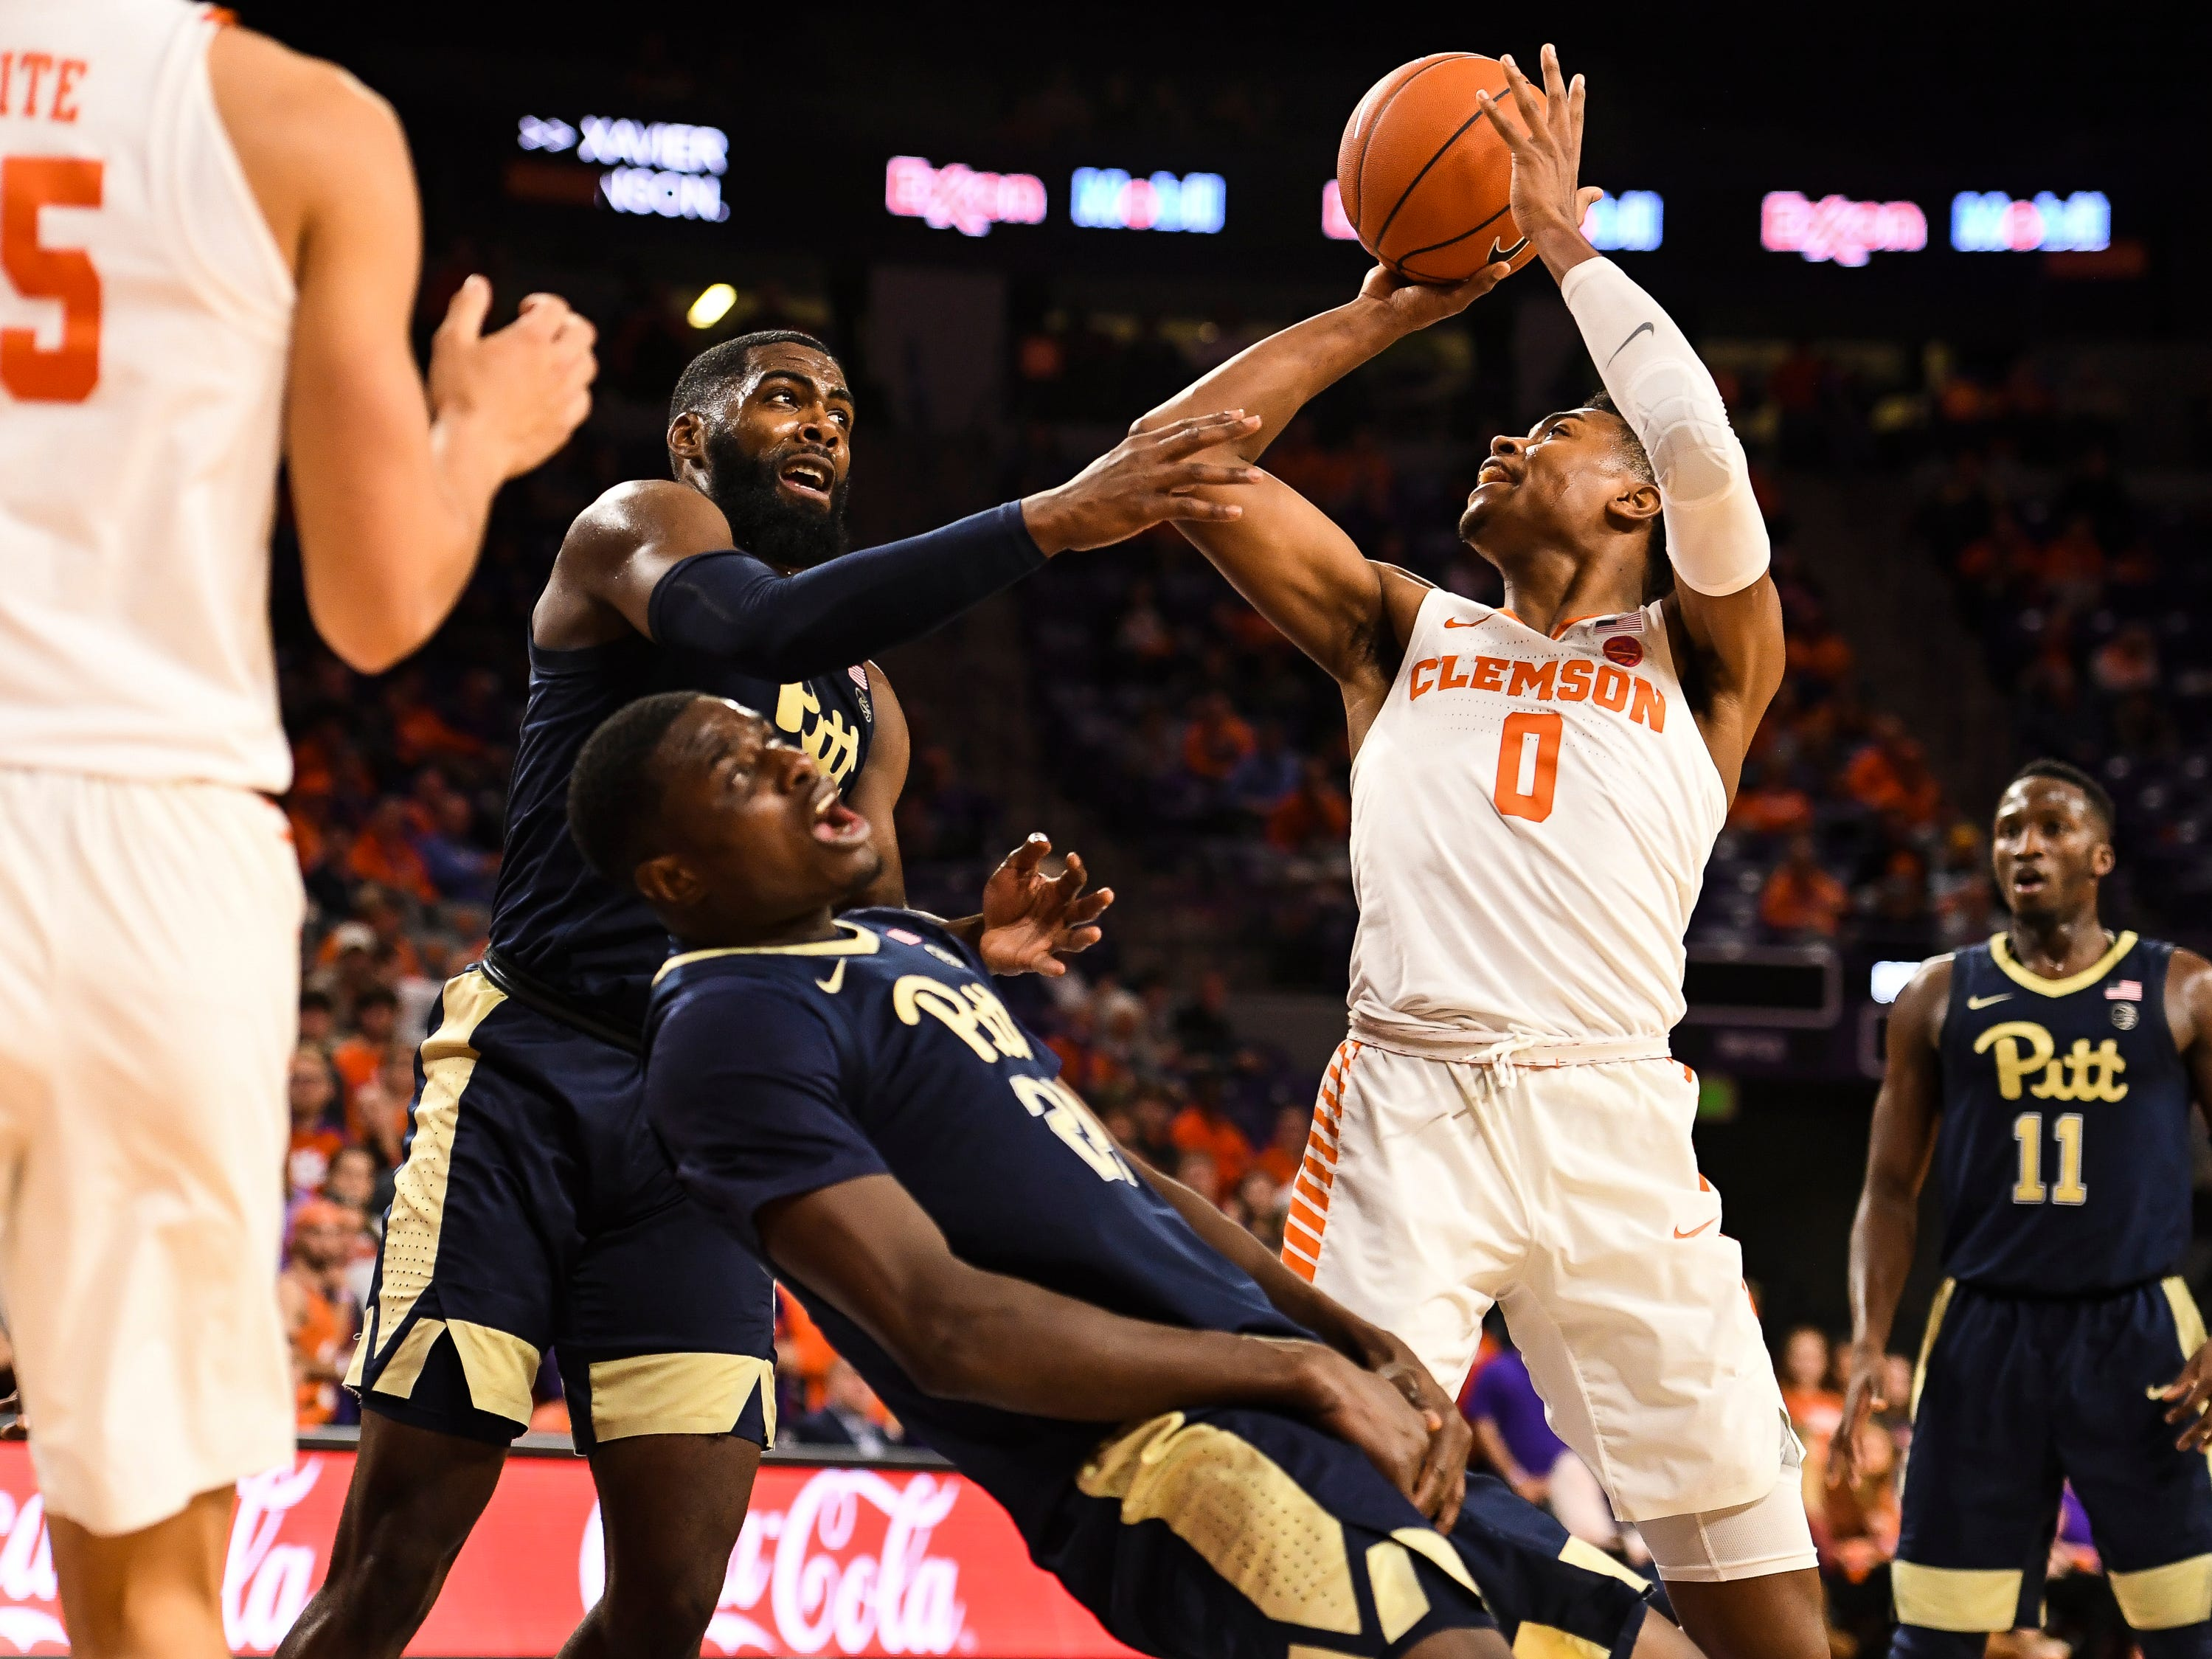 Clemson guard Clyde Trapp (0) attempts to shoot the ball as PittsburghÕs Jared Wilson-Frame (4) and Samson George (24) defend at Littlejohn Stadium on Tuesday, Jan. 29, 2019.